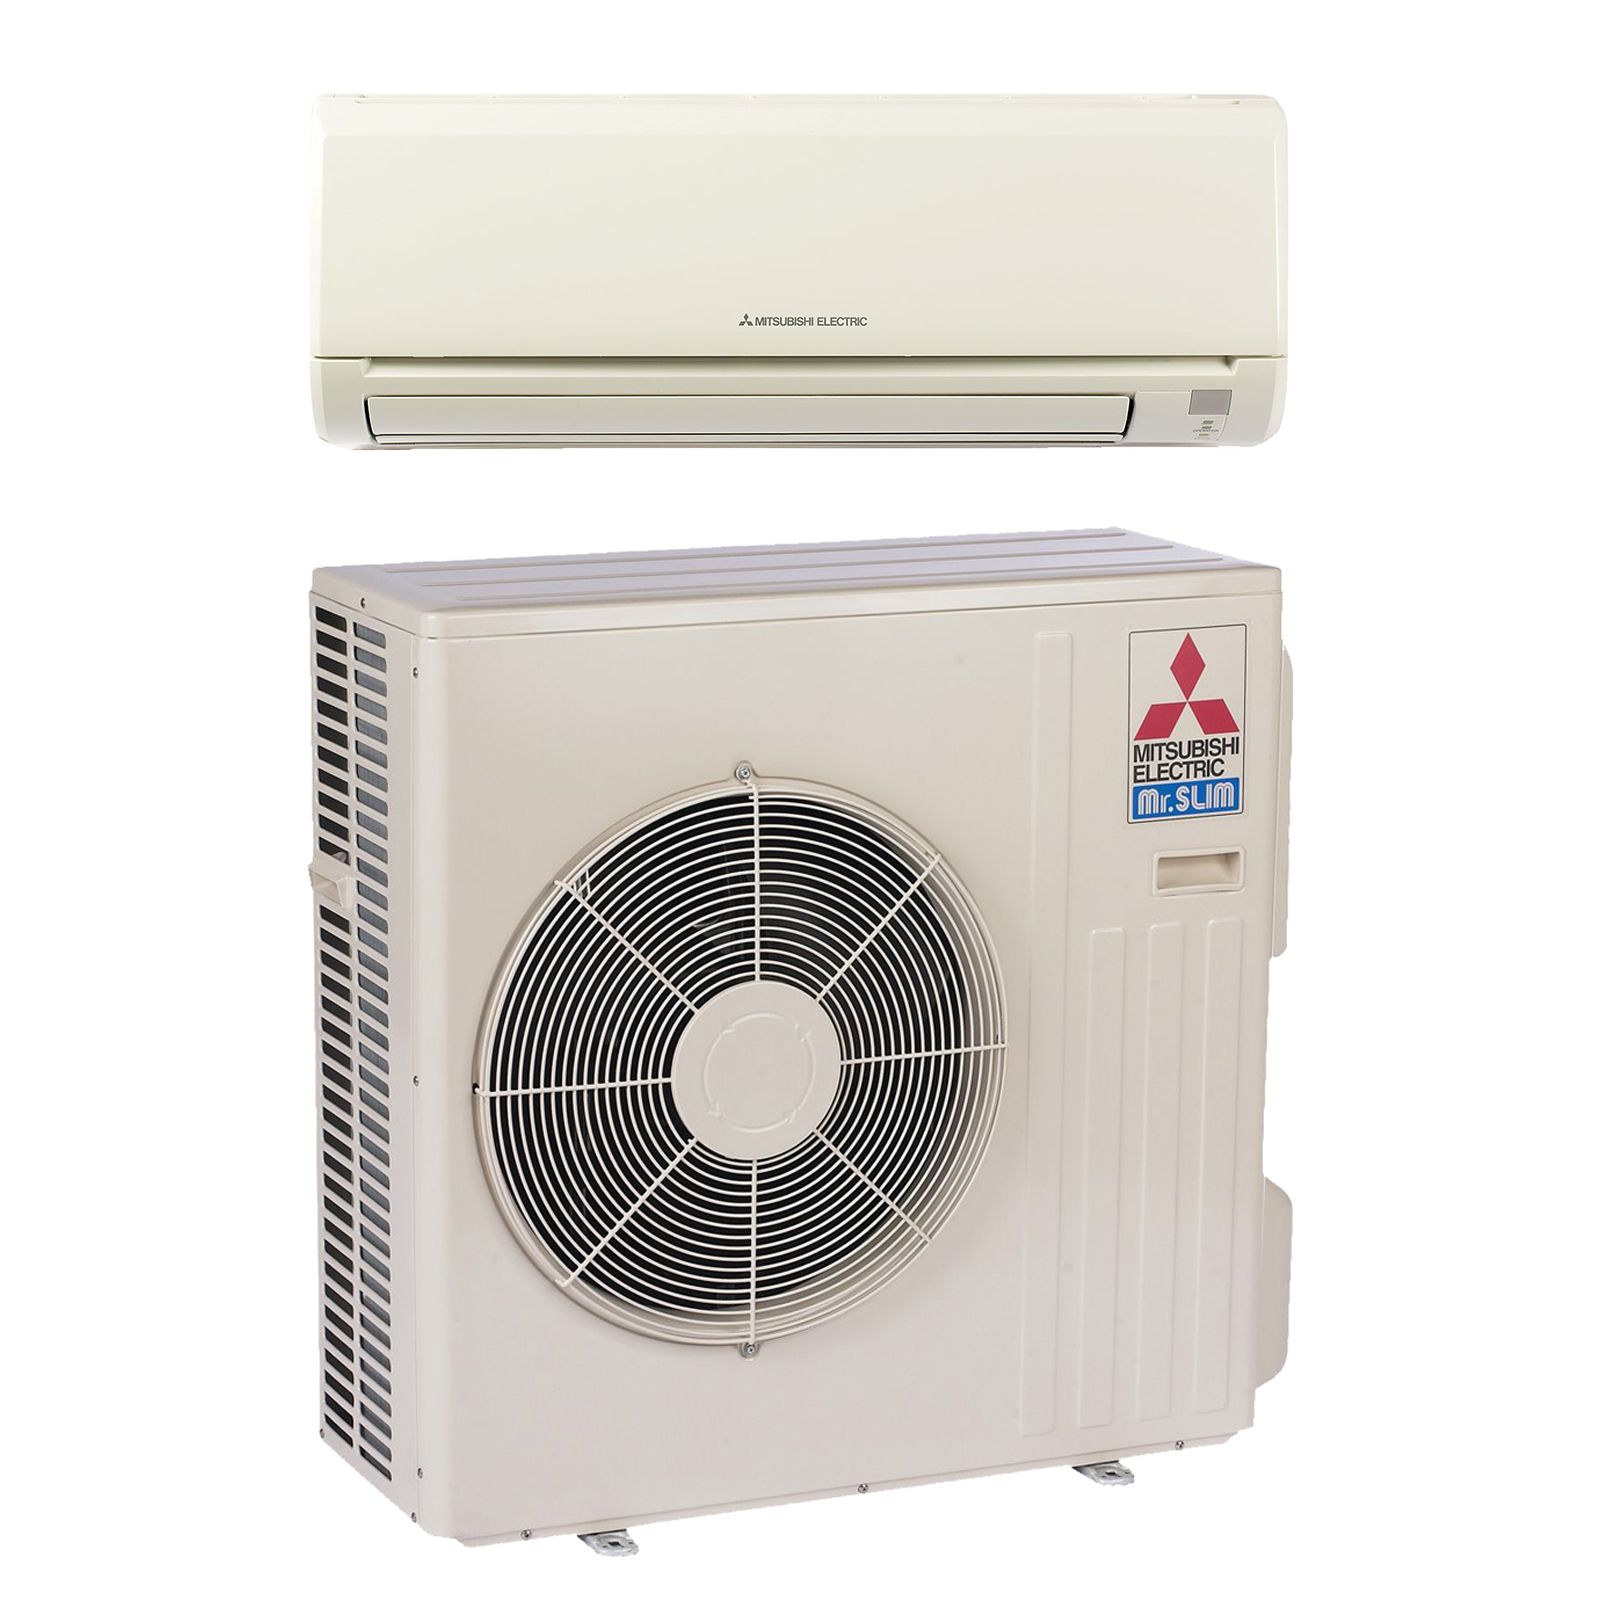 mitsubishi split air conditioner wiring diagram wiring diagram split system heat pump wiring diagram image about wiring diagram for air conditioner